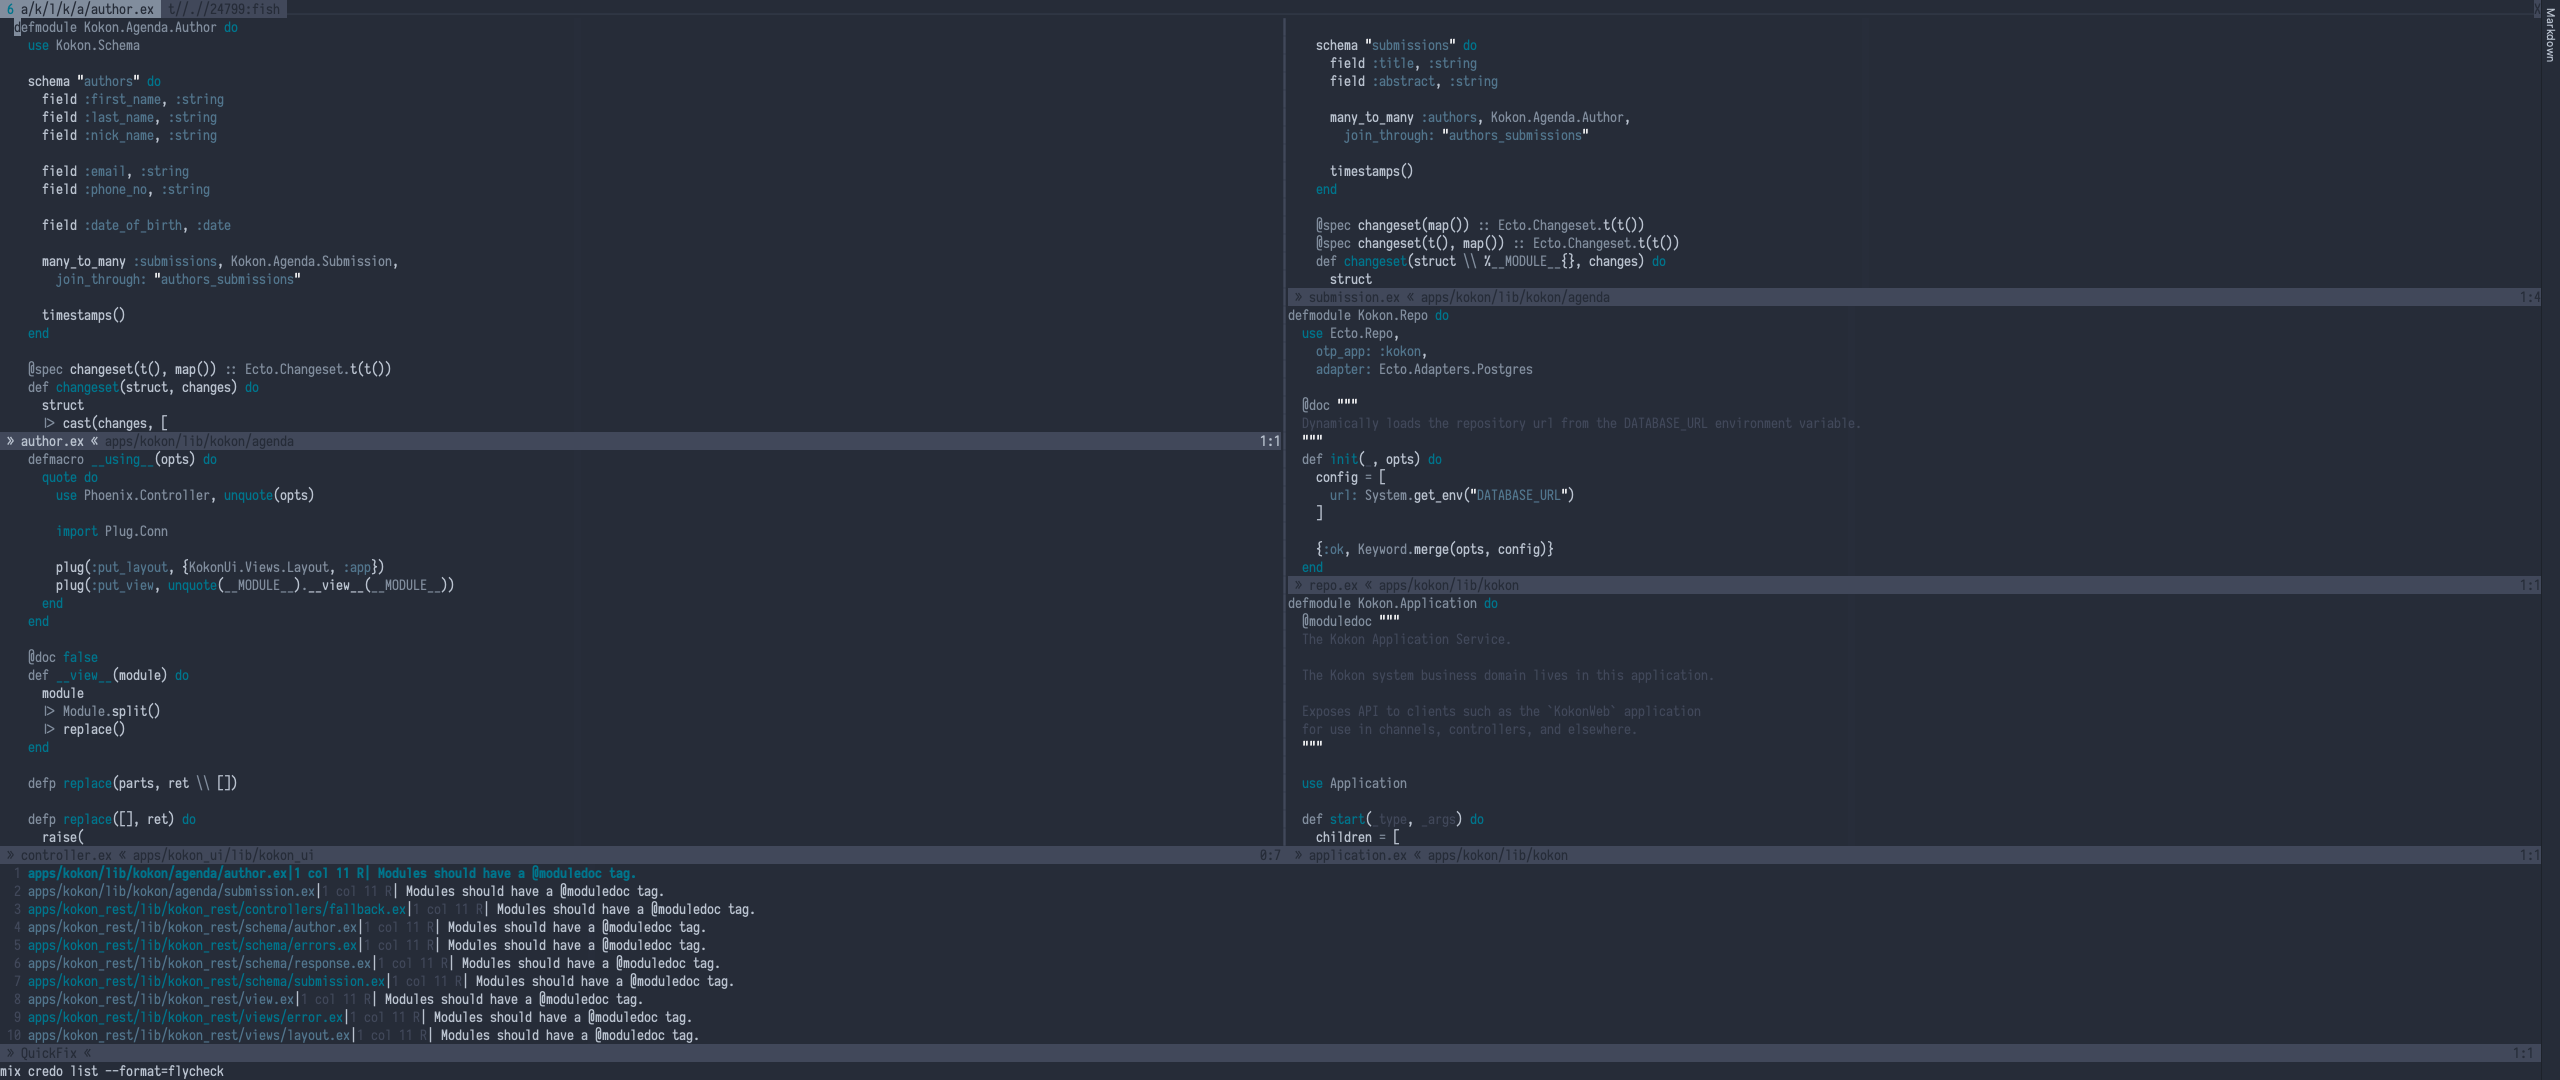 My example session in NeoVim with QuickFix displaying Credo warnings